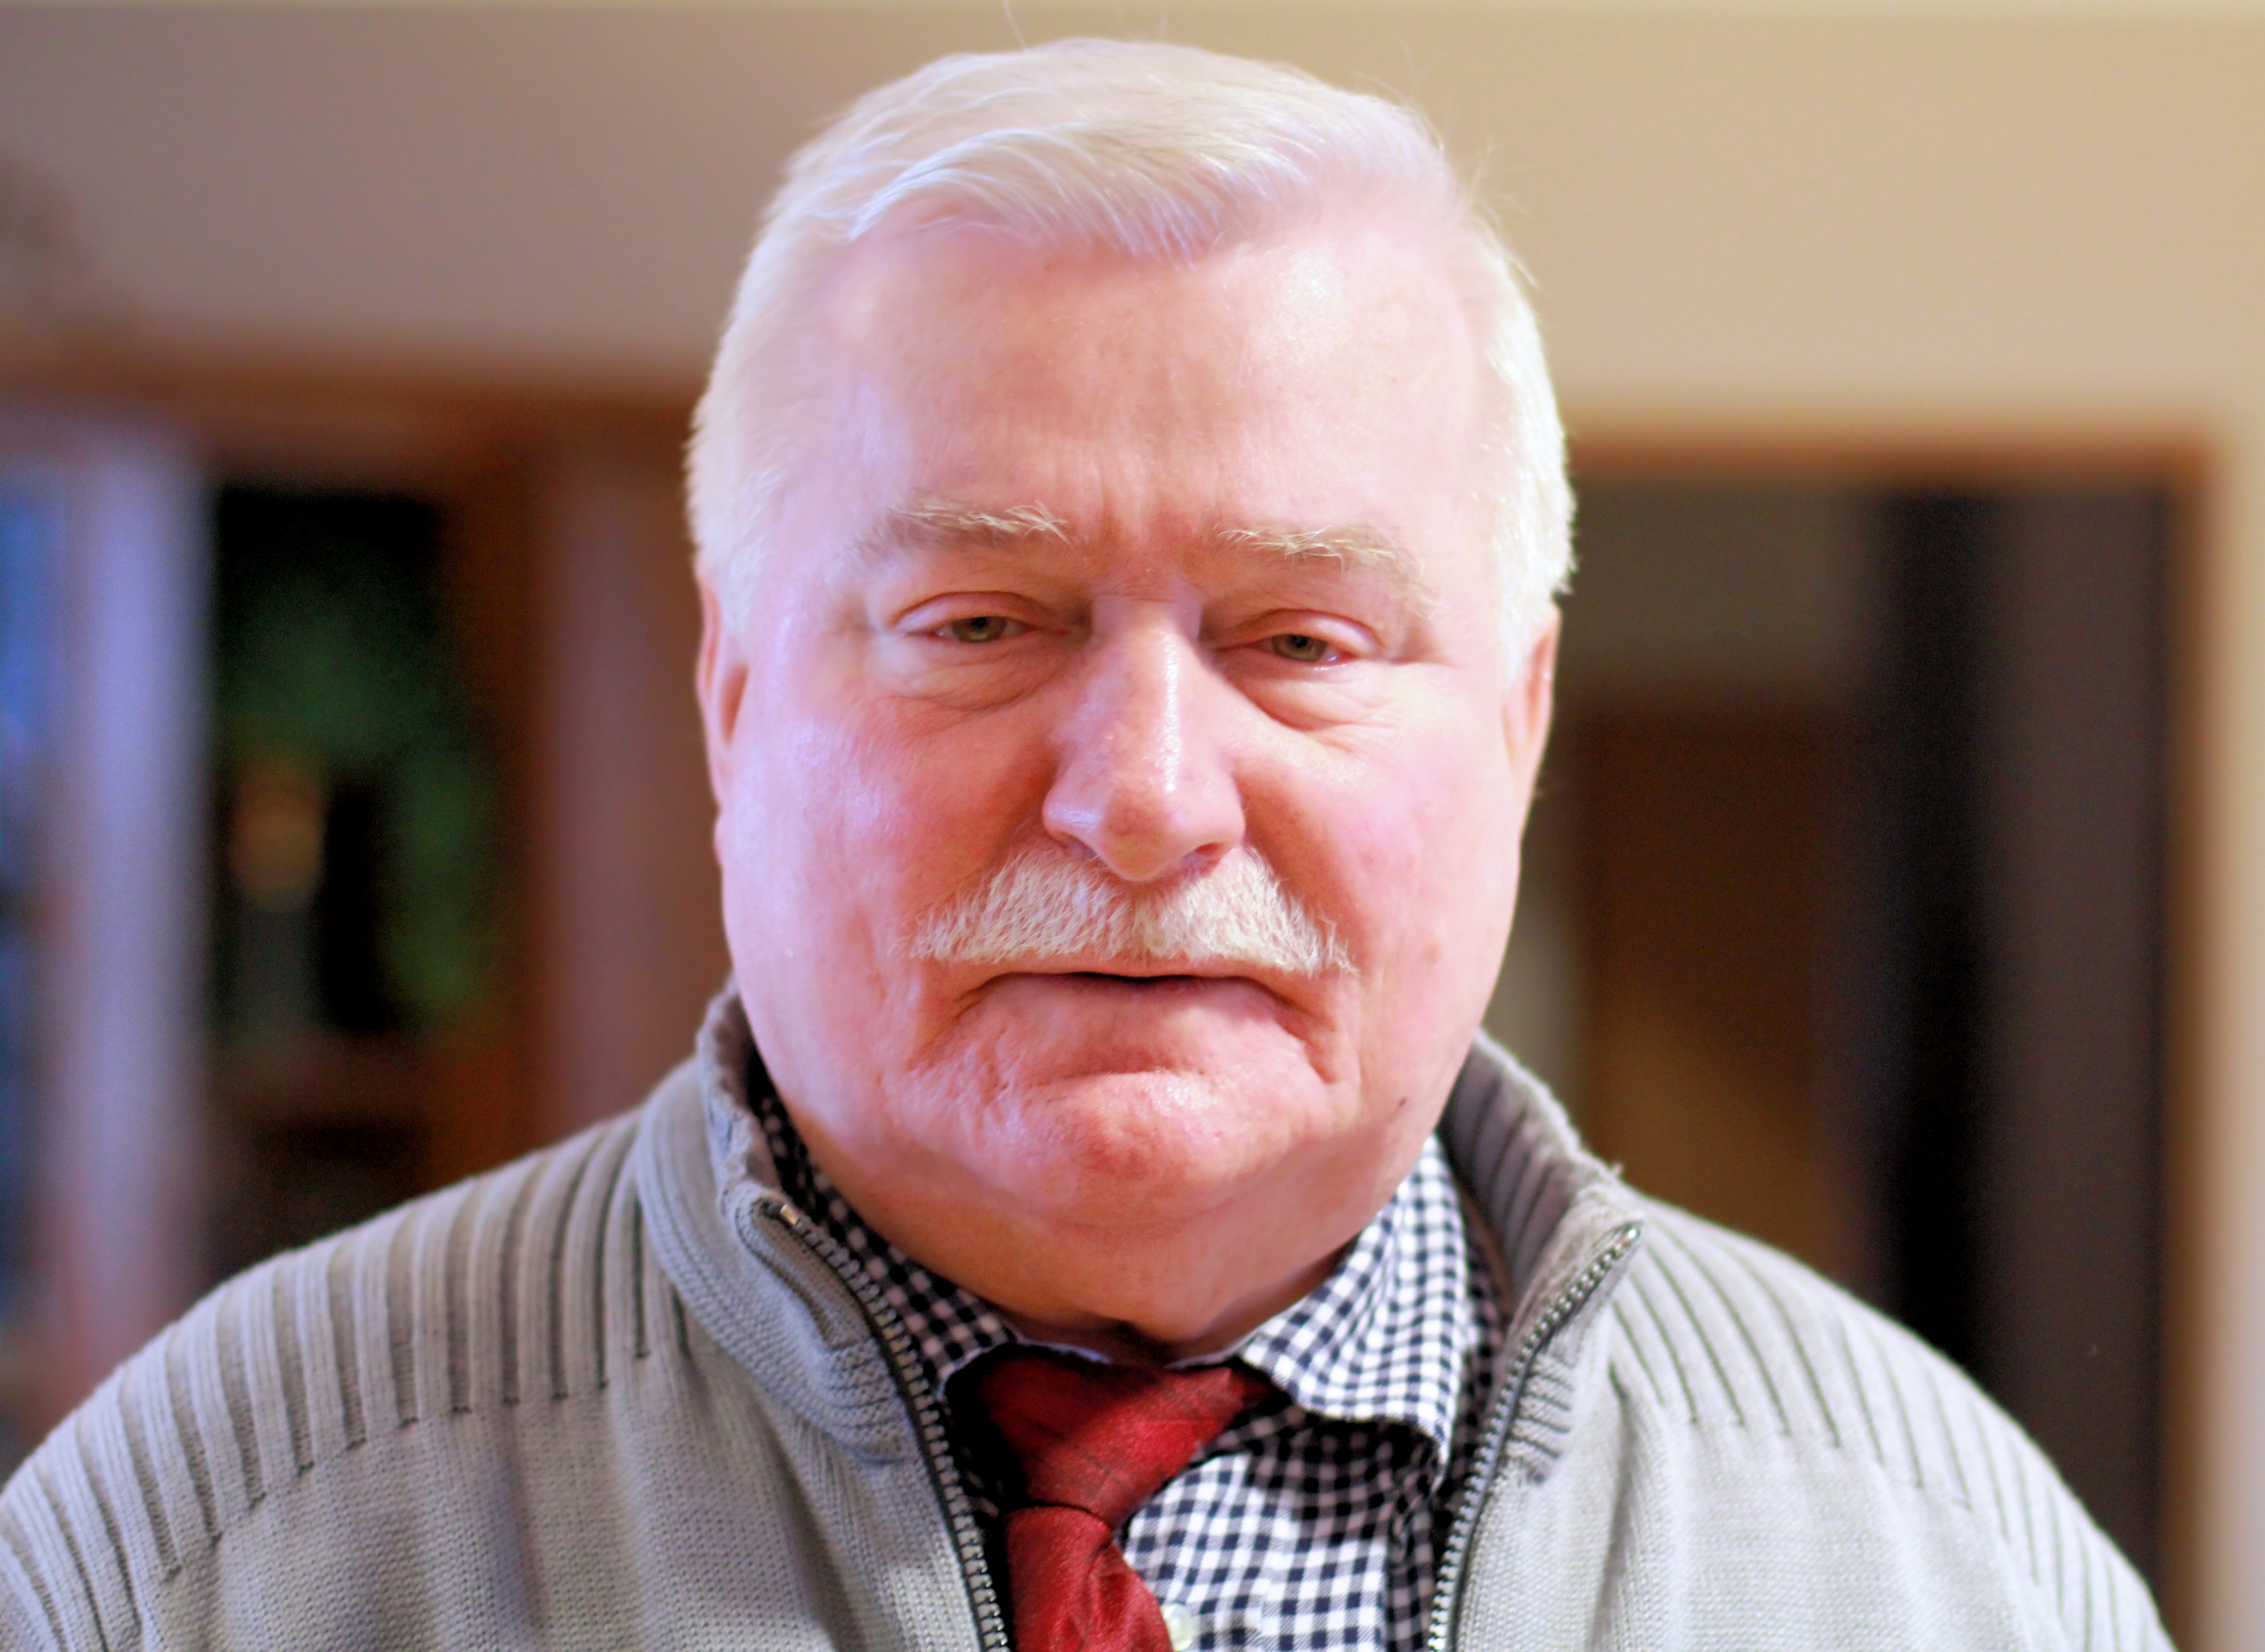 Lech Wałęsa National Hero And Communist Informant